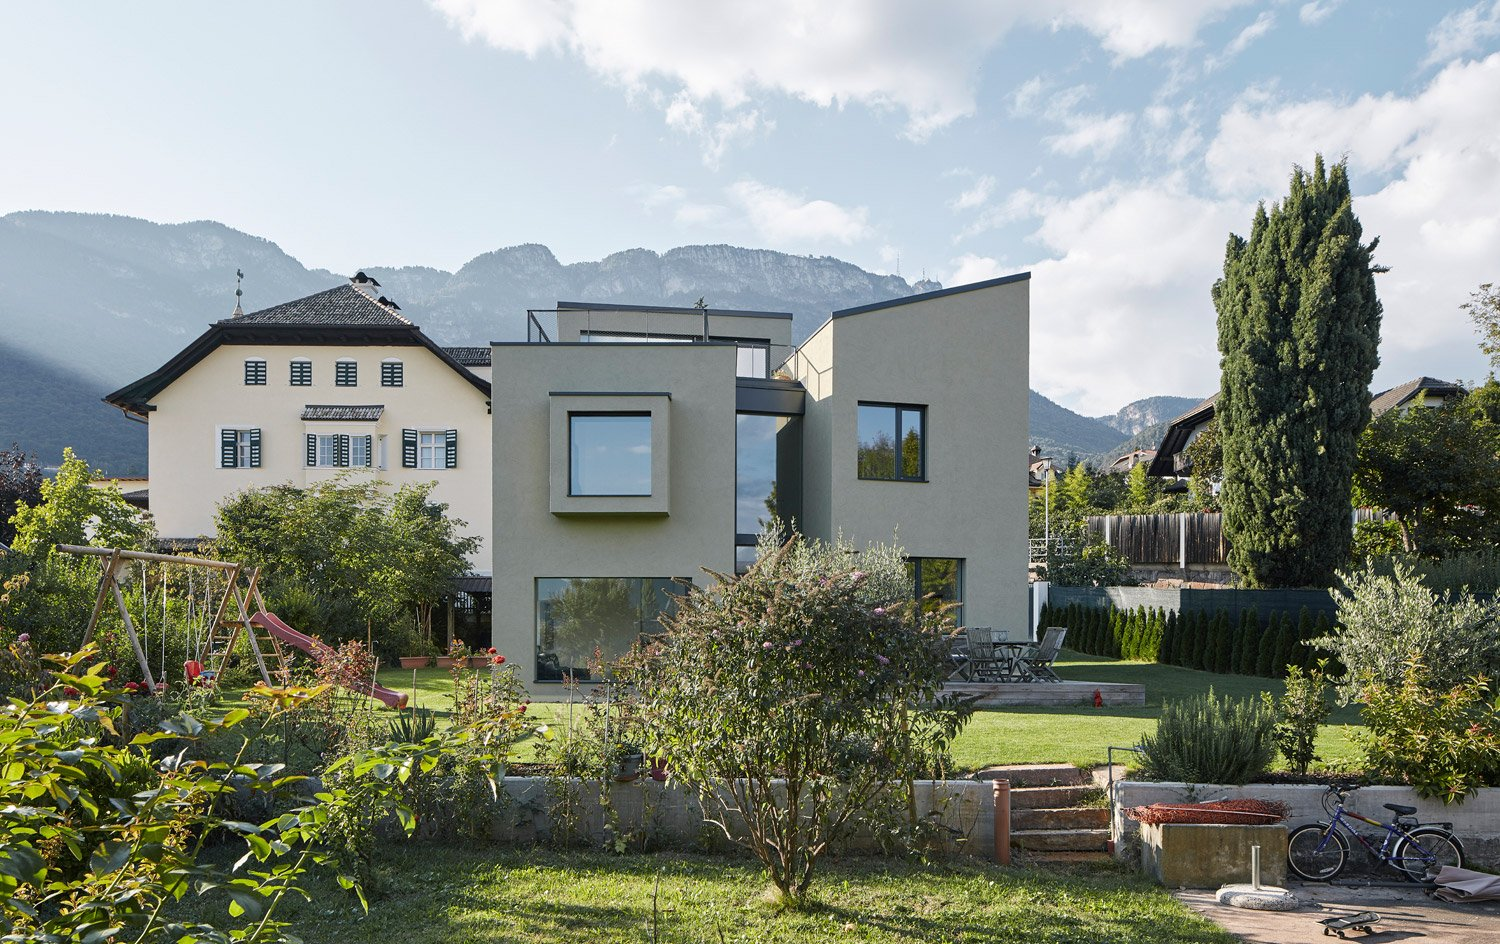 The pistachio tone of the facades is inspired by their natural surroundings David Schreyer